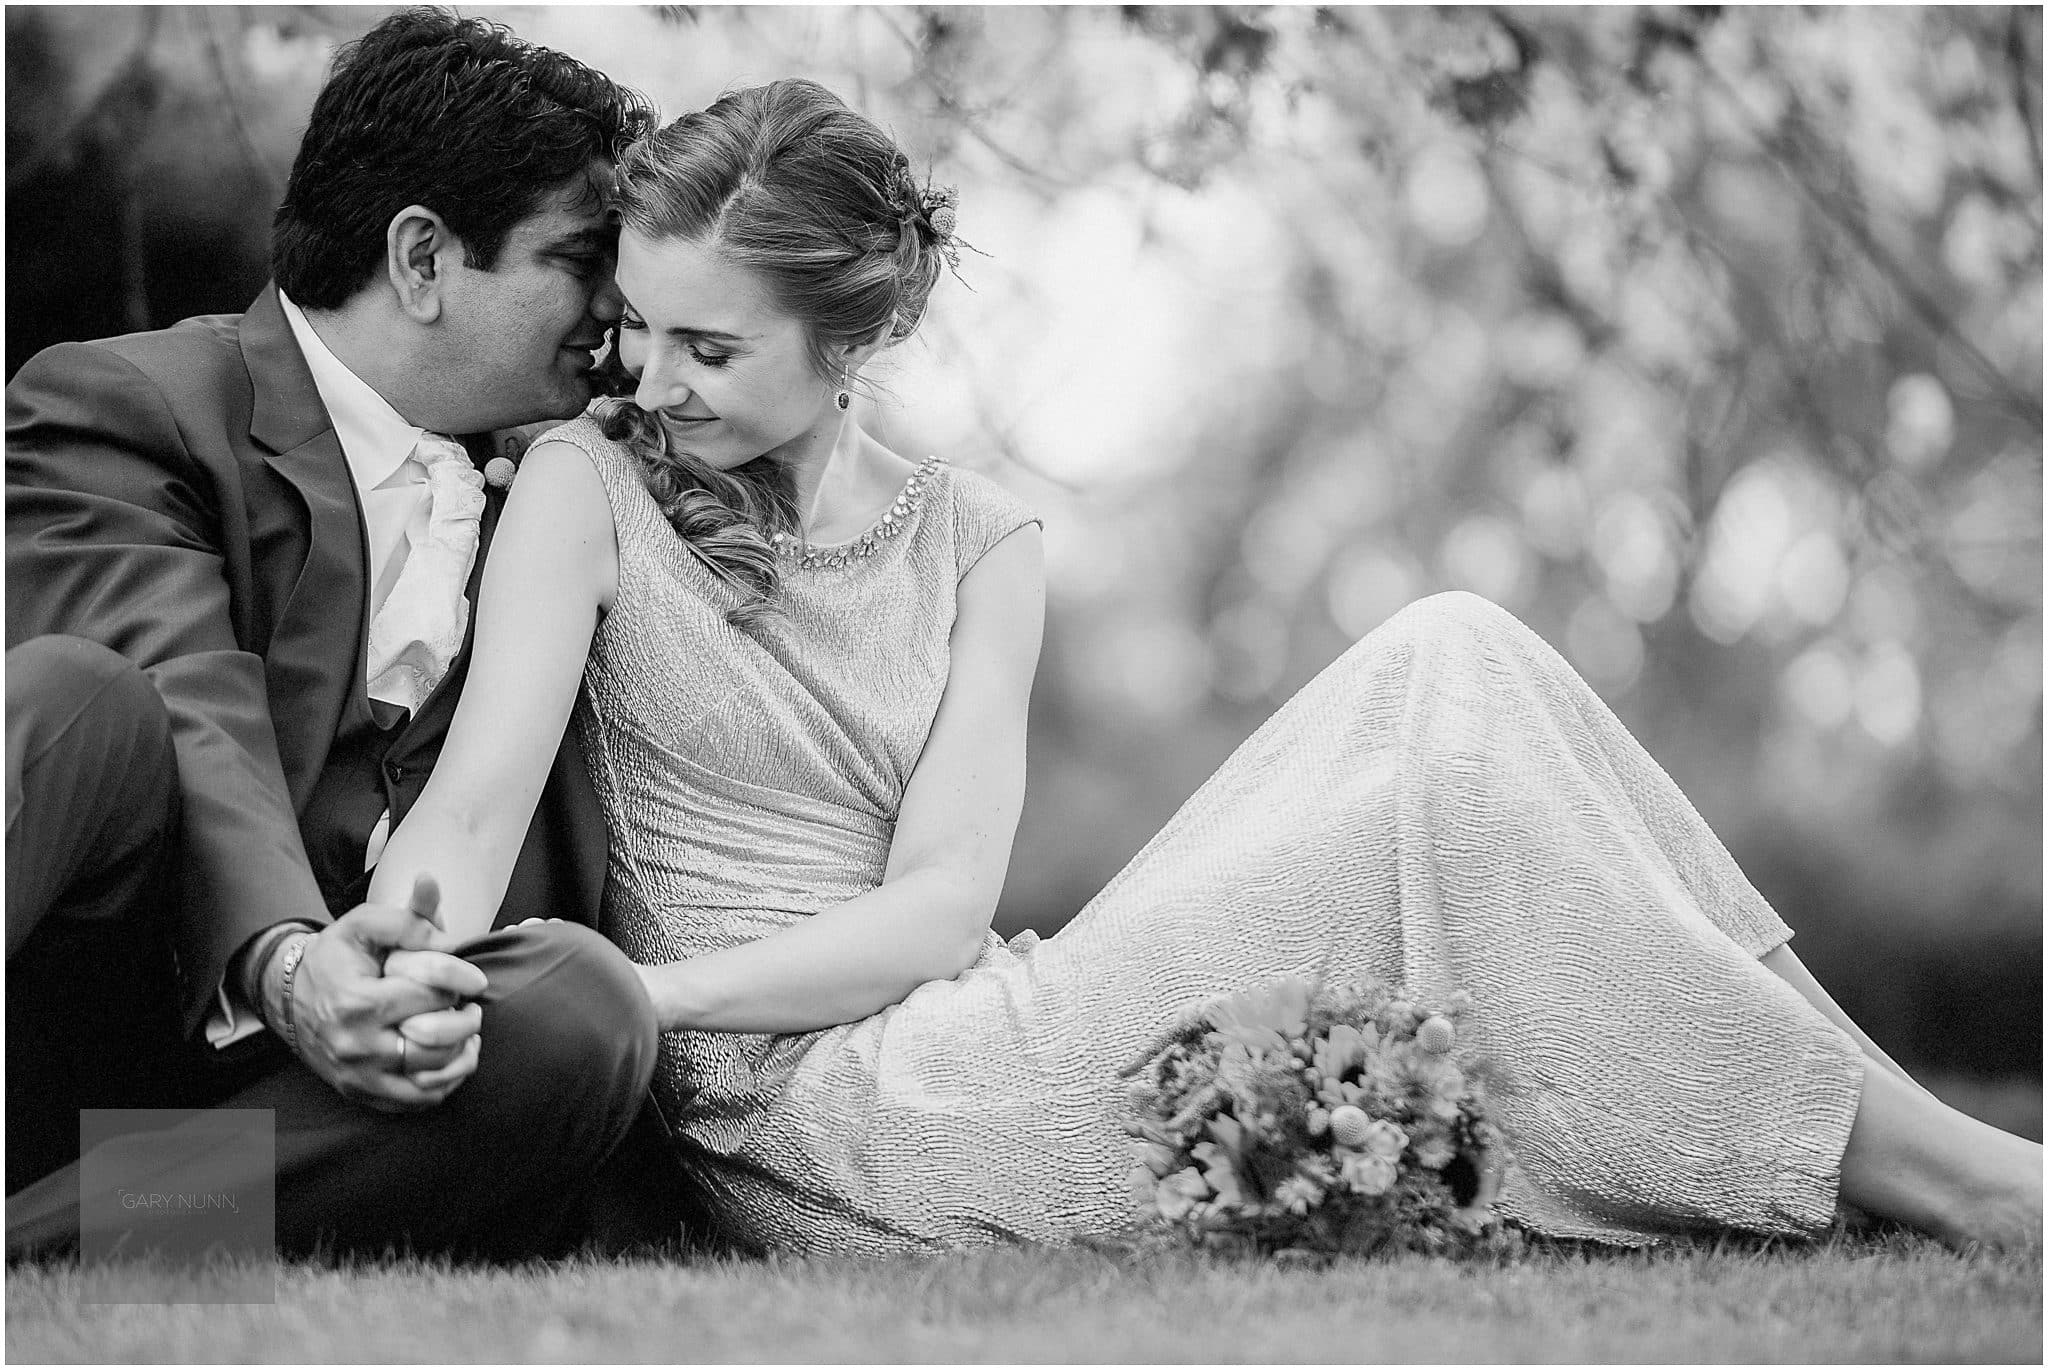 Why hire a professional wedding photographer